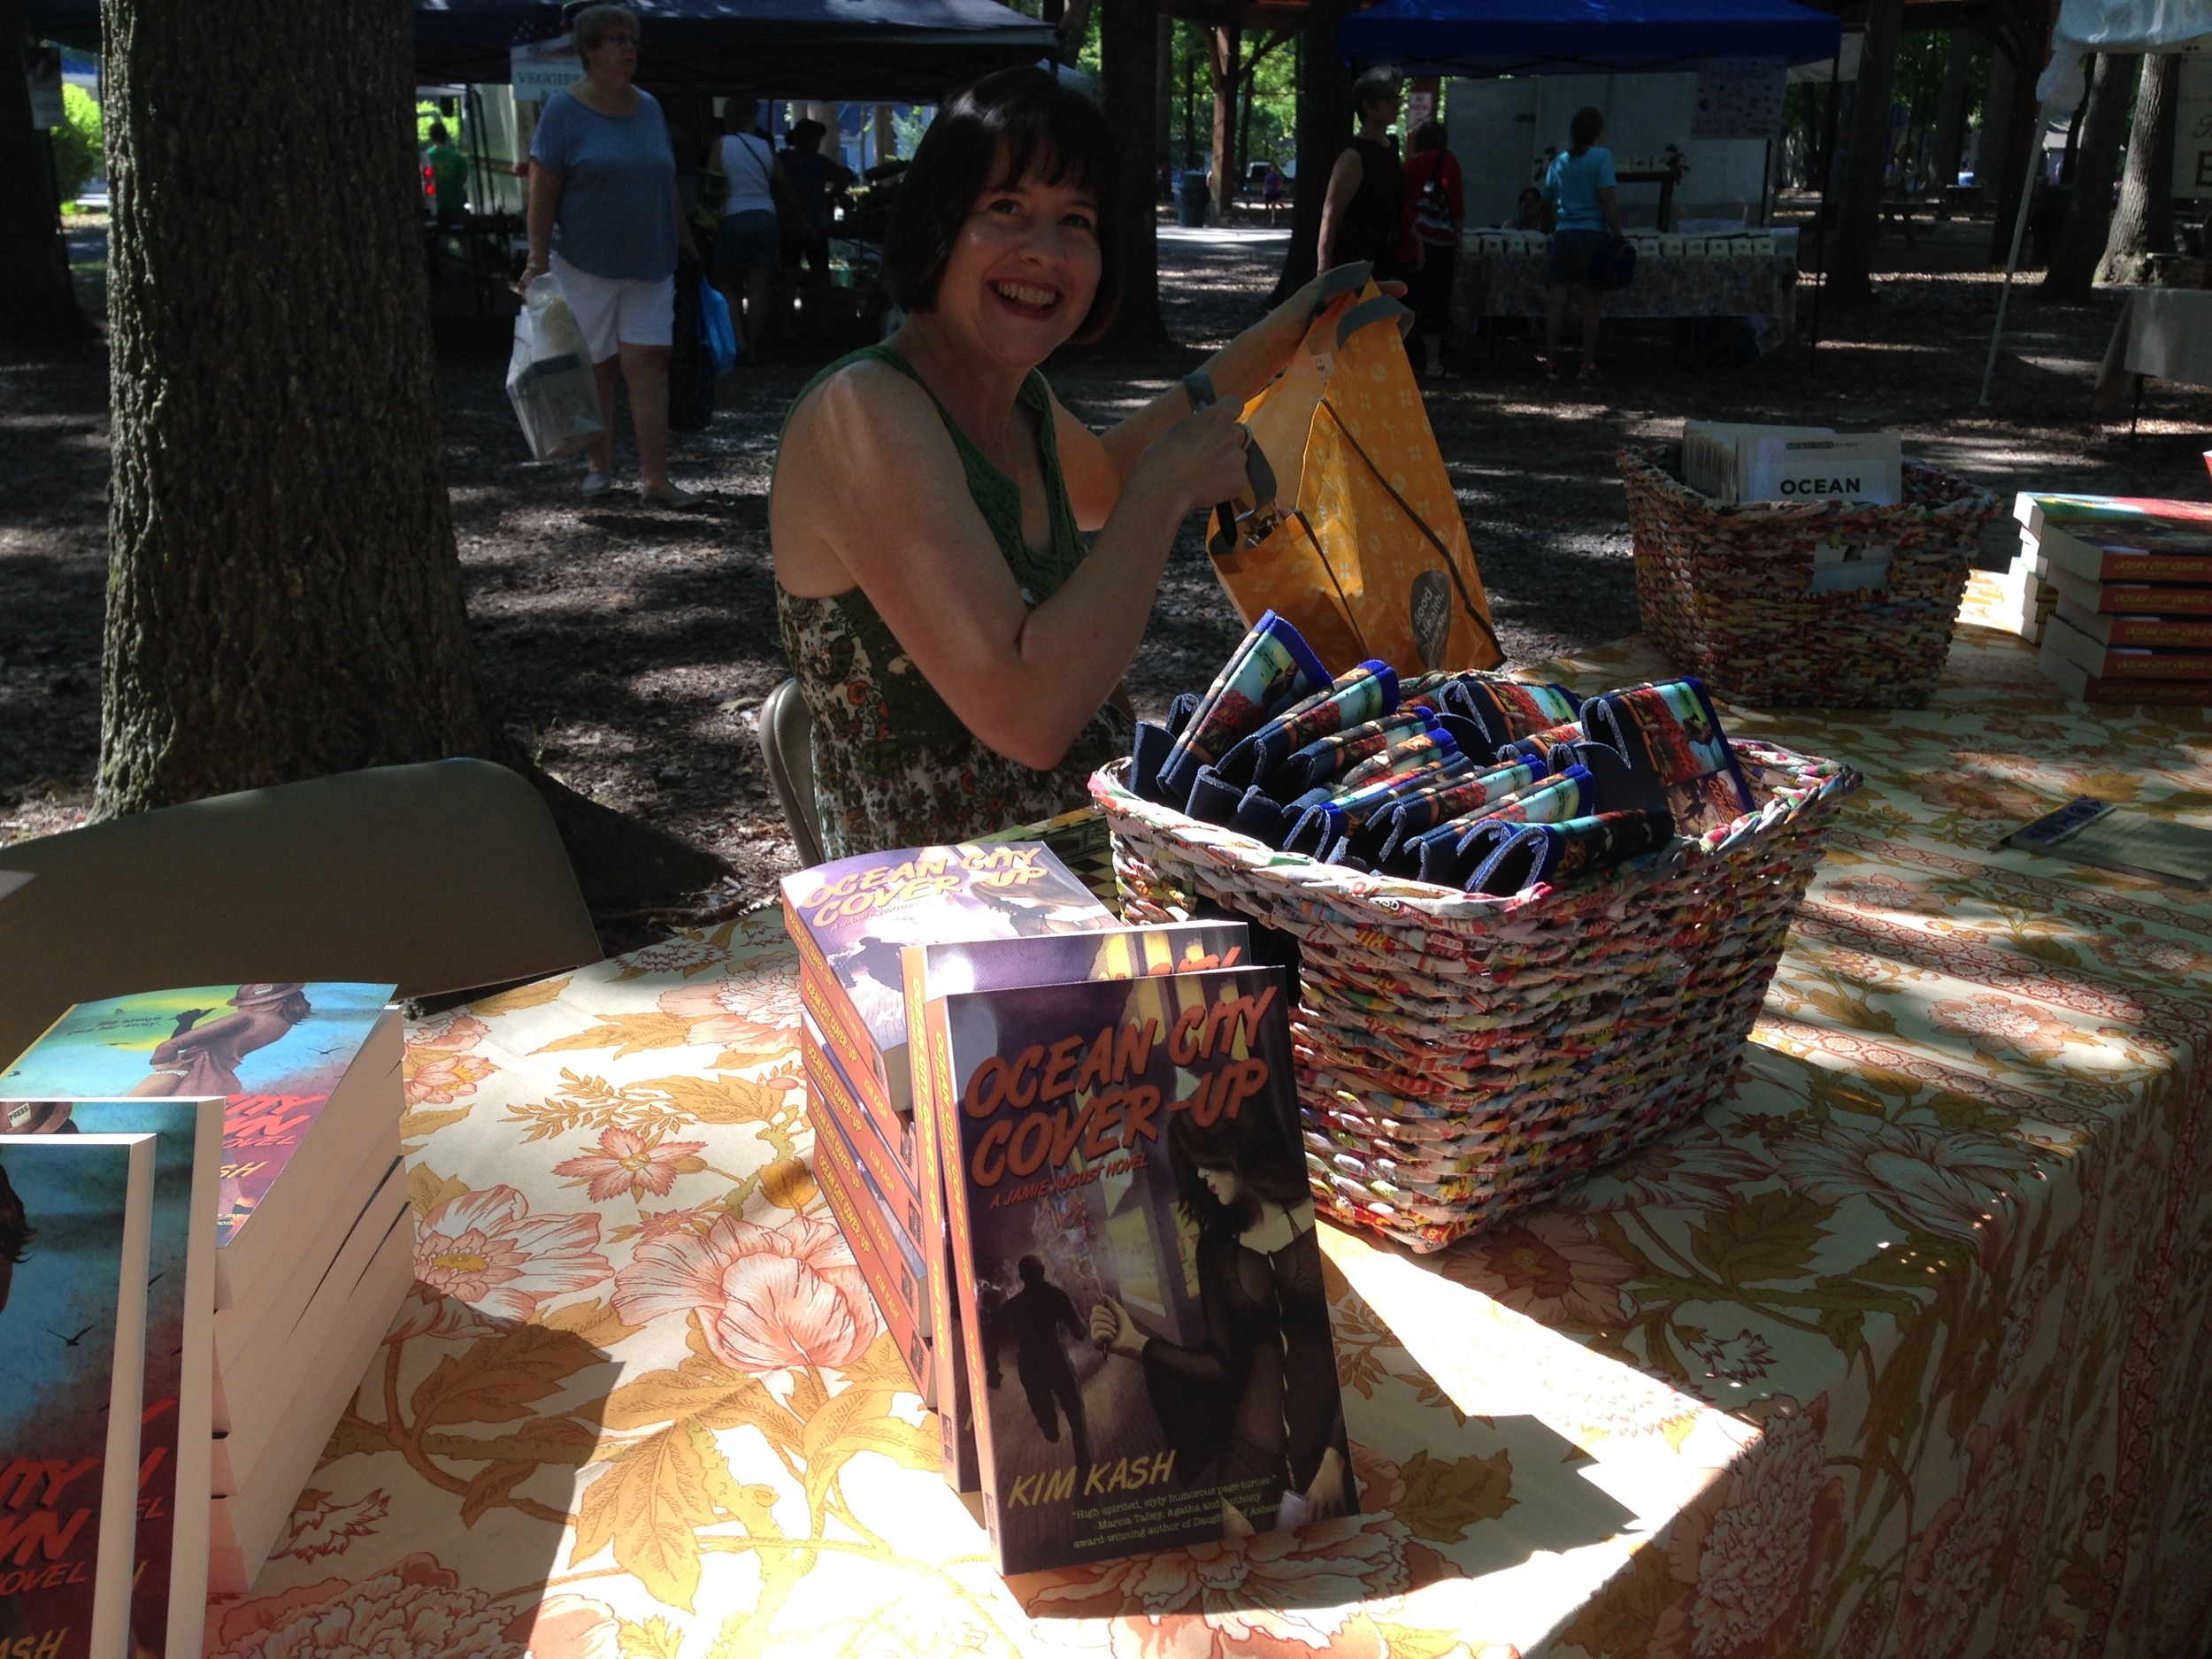 Unpacking for a book signing at the Ocean Pines Farmers Market